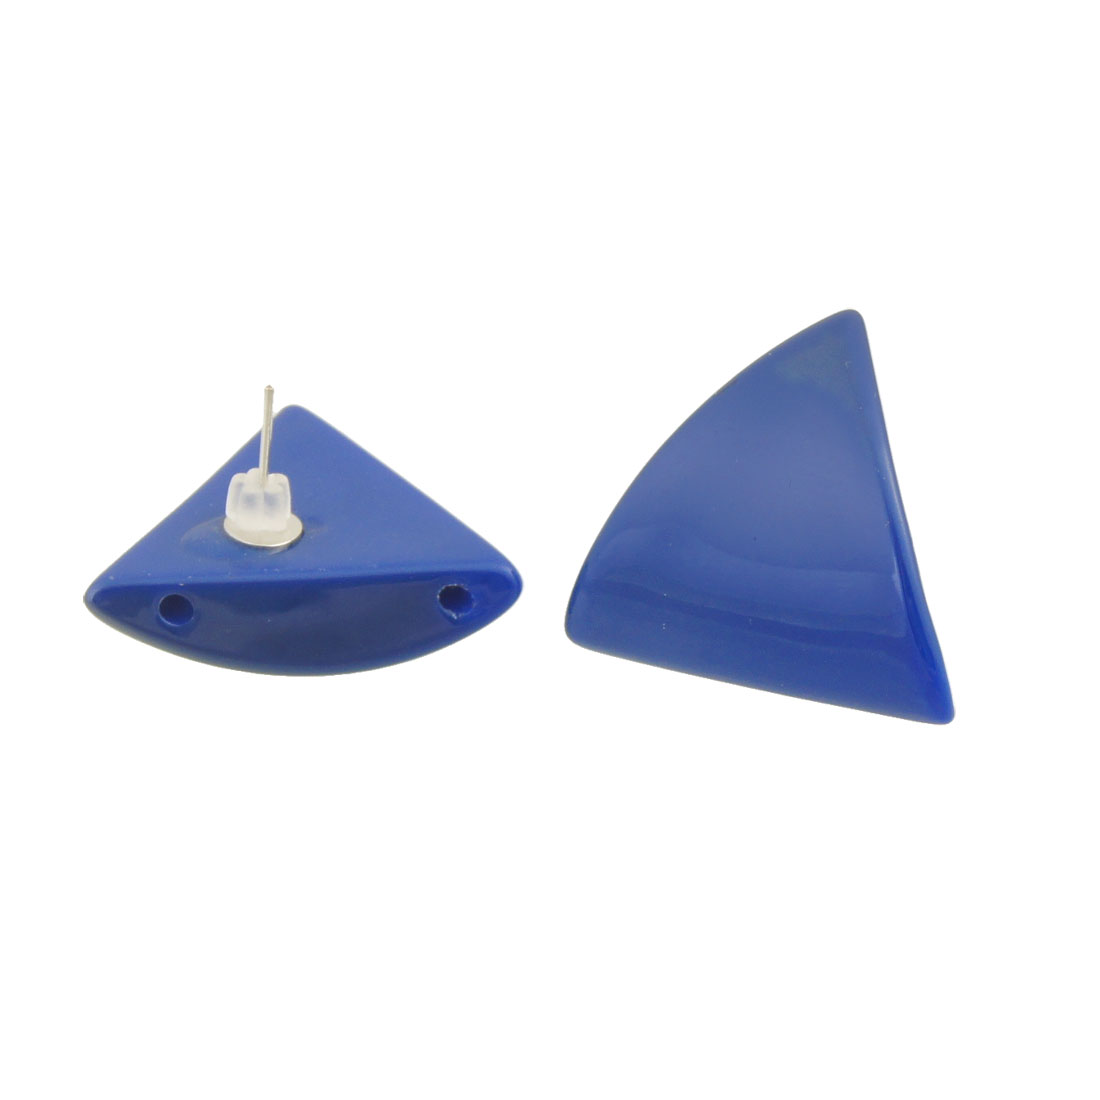 Pair Blue Plastic Triangle Shape Pendant Ear Pin Stud Earrings for Women